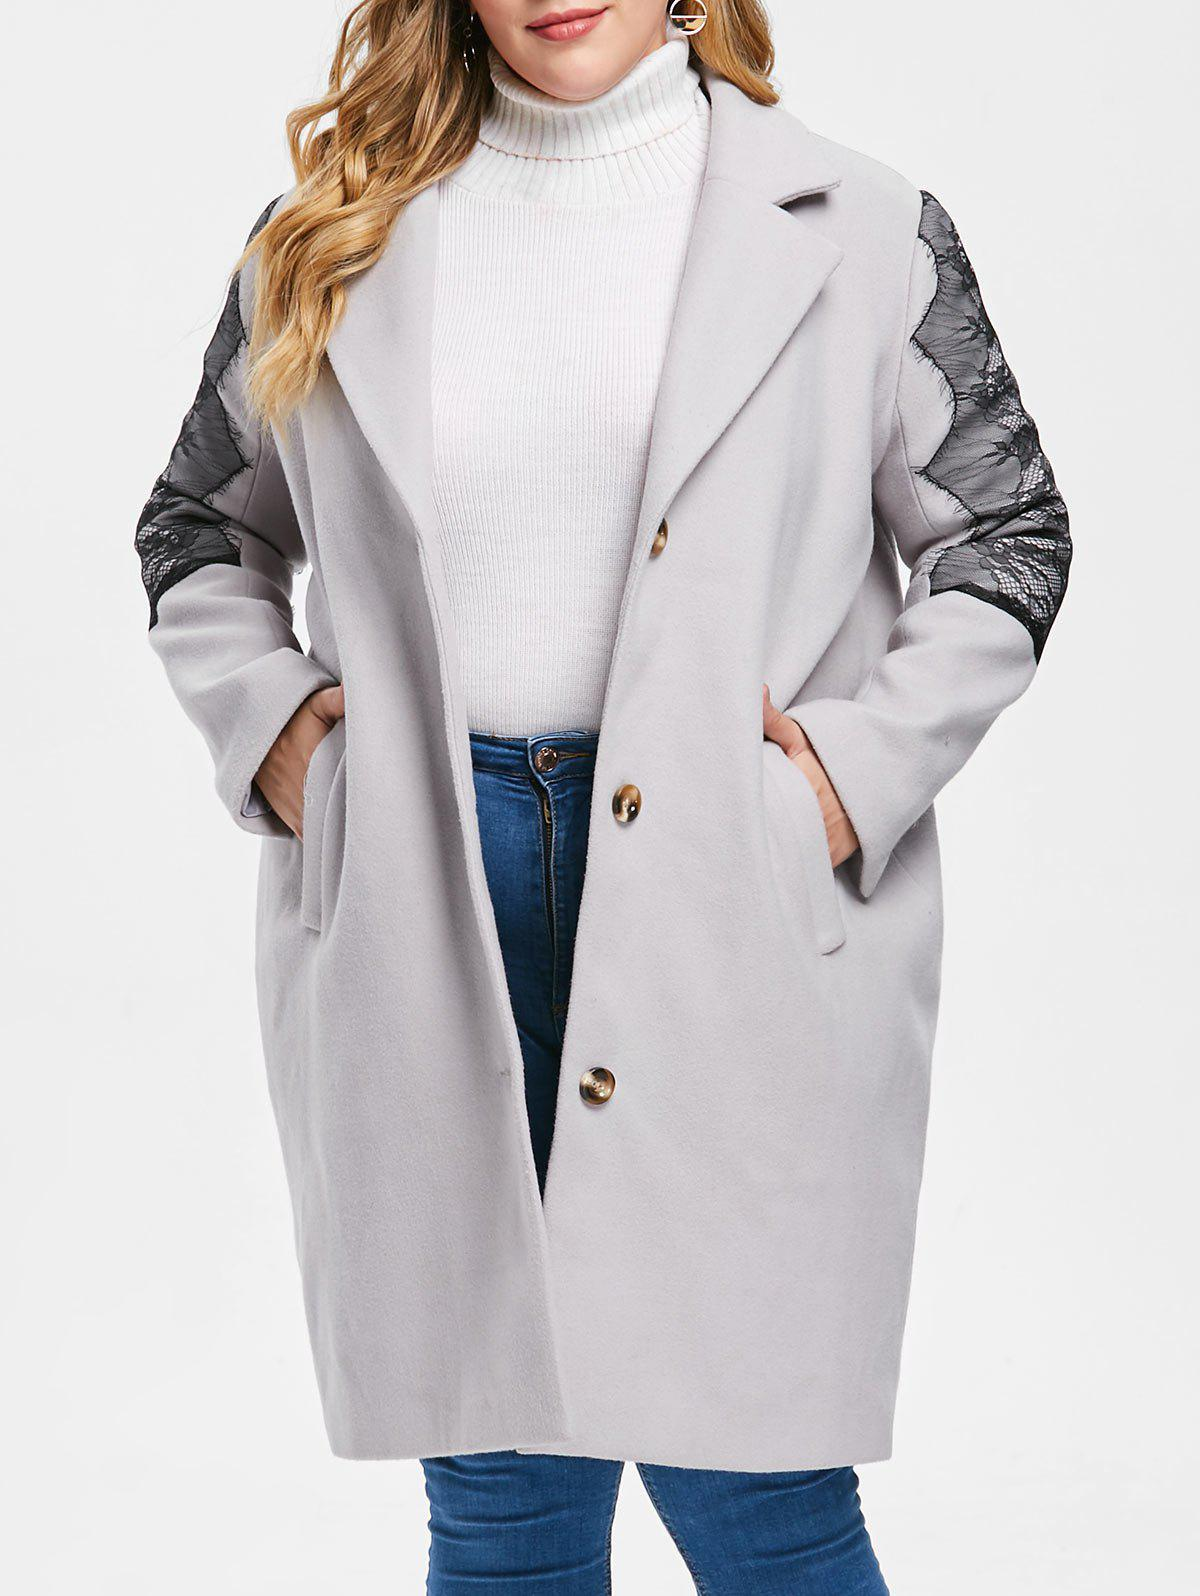 Plus Size Eyelash Lace Coat - LIGHT GRAY L